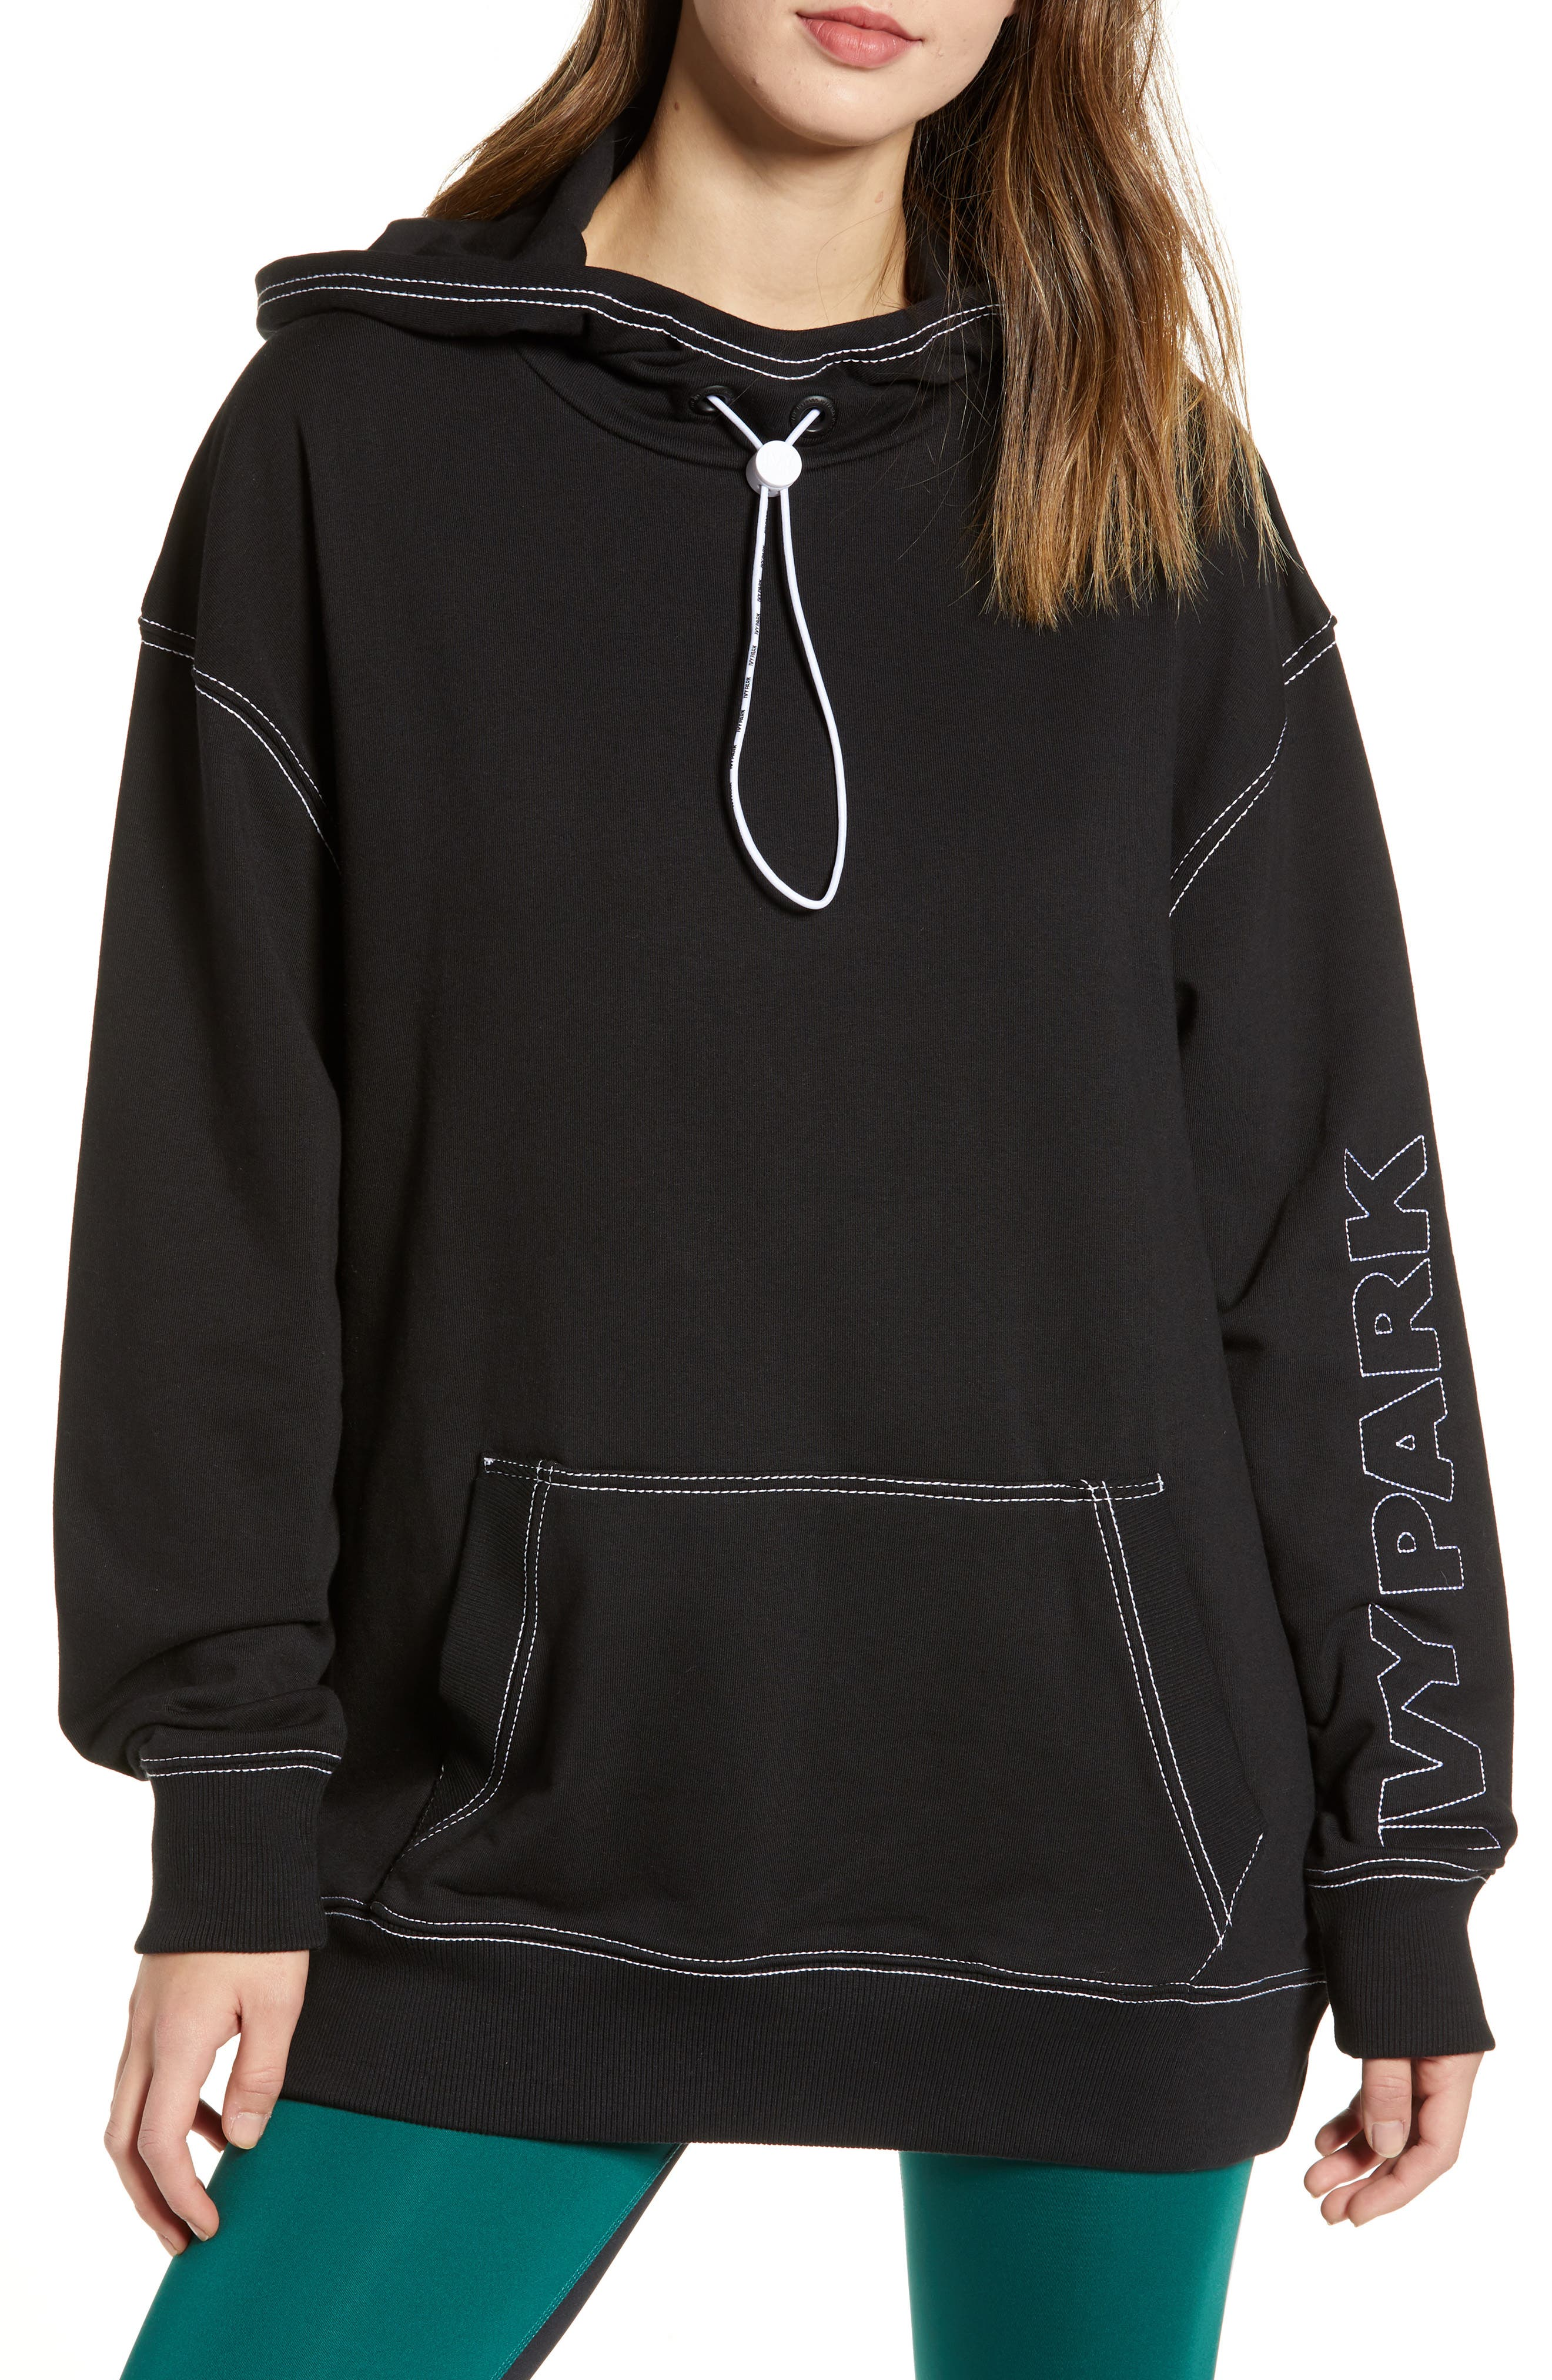 IVY PARK<SUP>®</SUP> Stab Stitch Hoodie, Main, color, 002